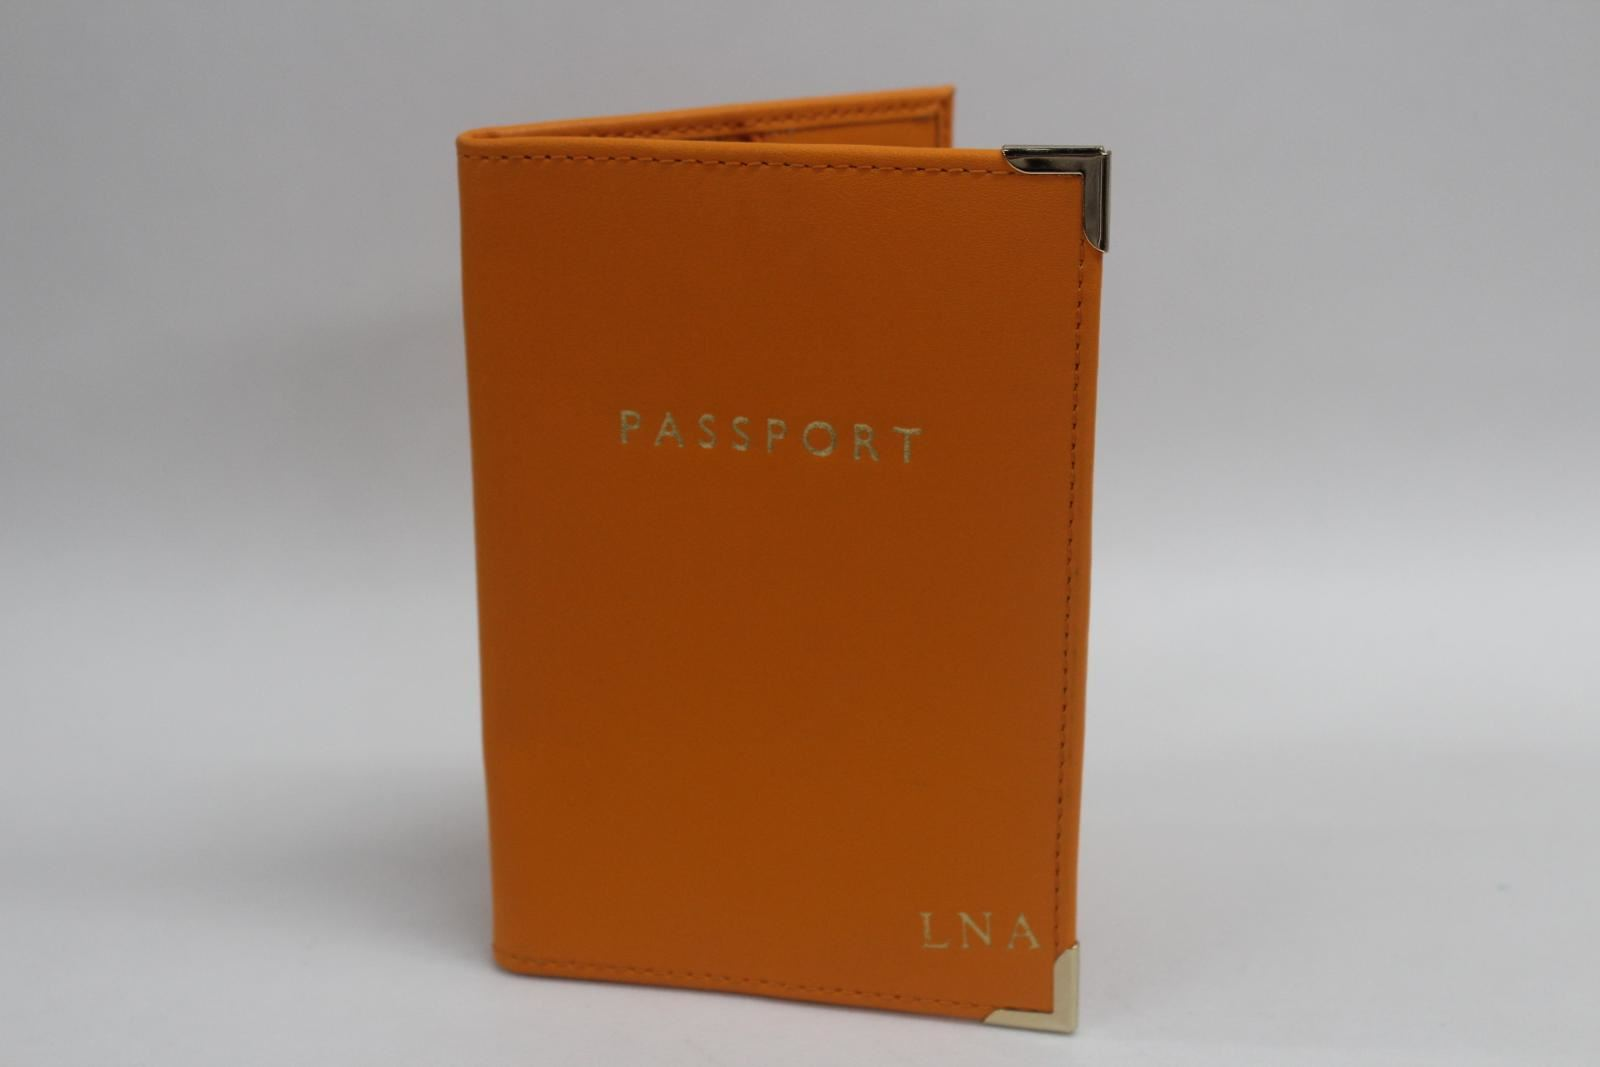 ASPINAL-OF-LONDON-Plain-Amber-Smooth-Leather-Passport-Holder-Cover-Initials-LNA